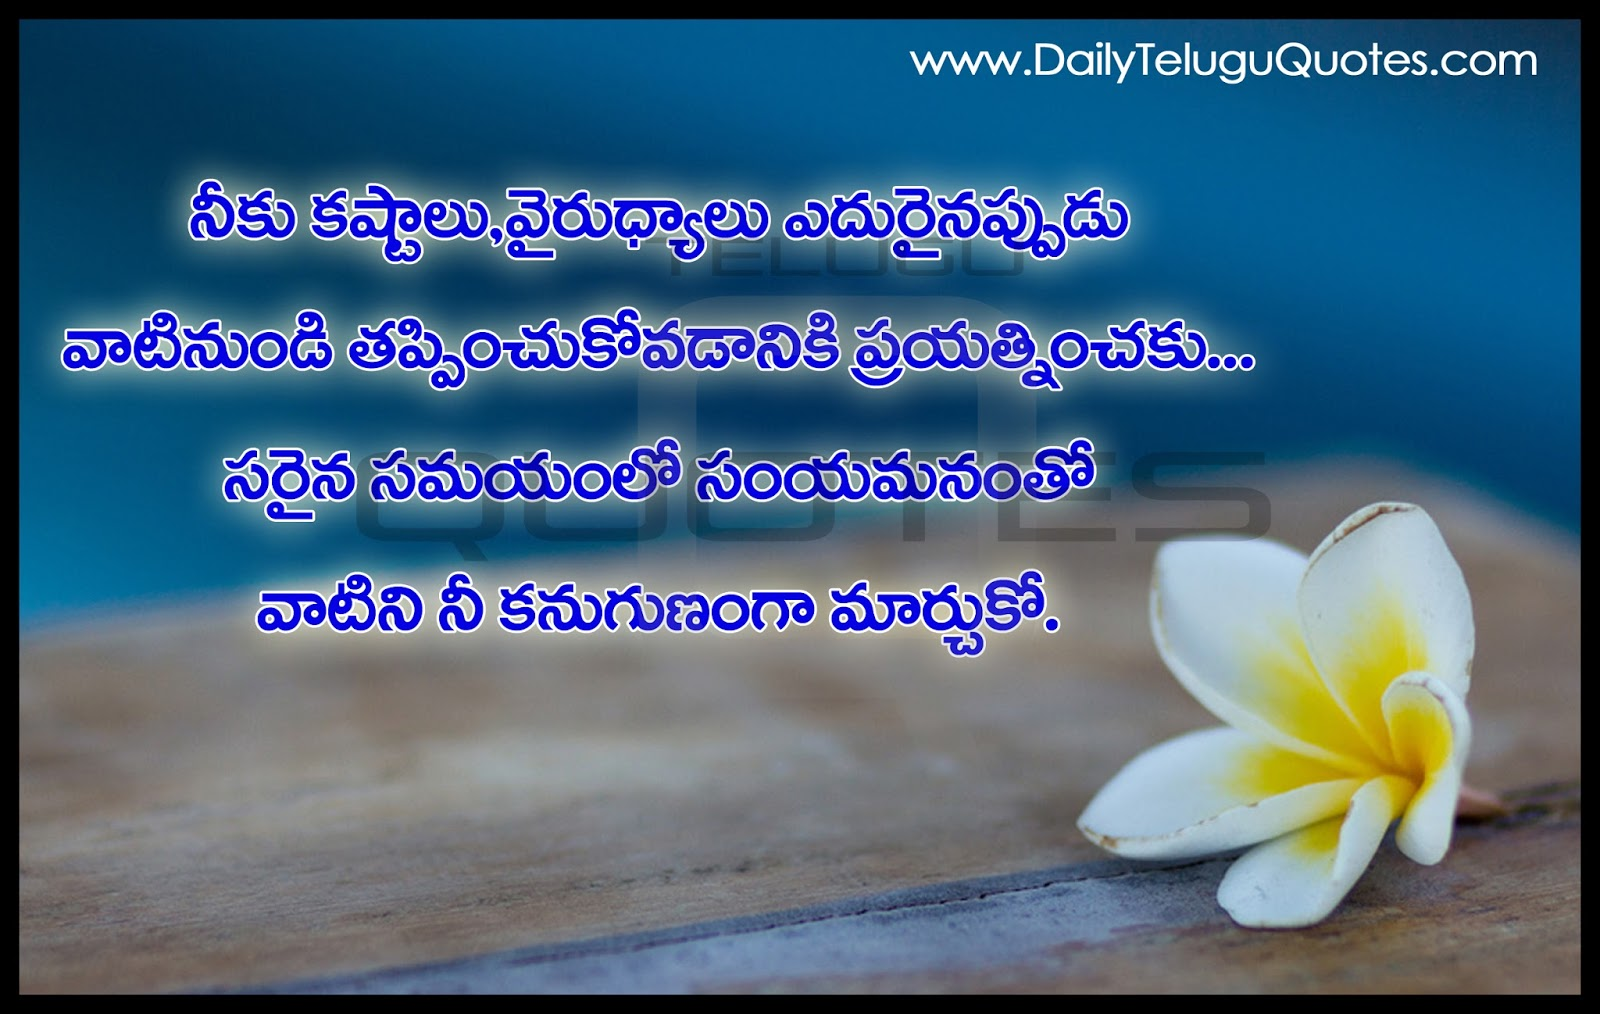 Motivational Inspirational Quotes About Life Best Inspiration Thoughts And Quotes In Telugu  Dailyteluguquotes